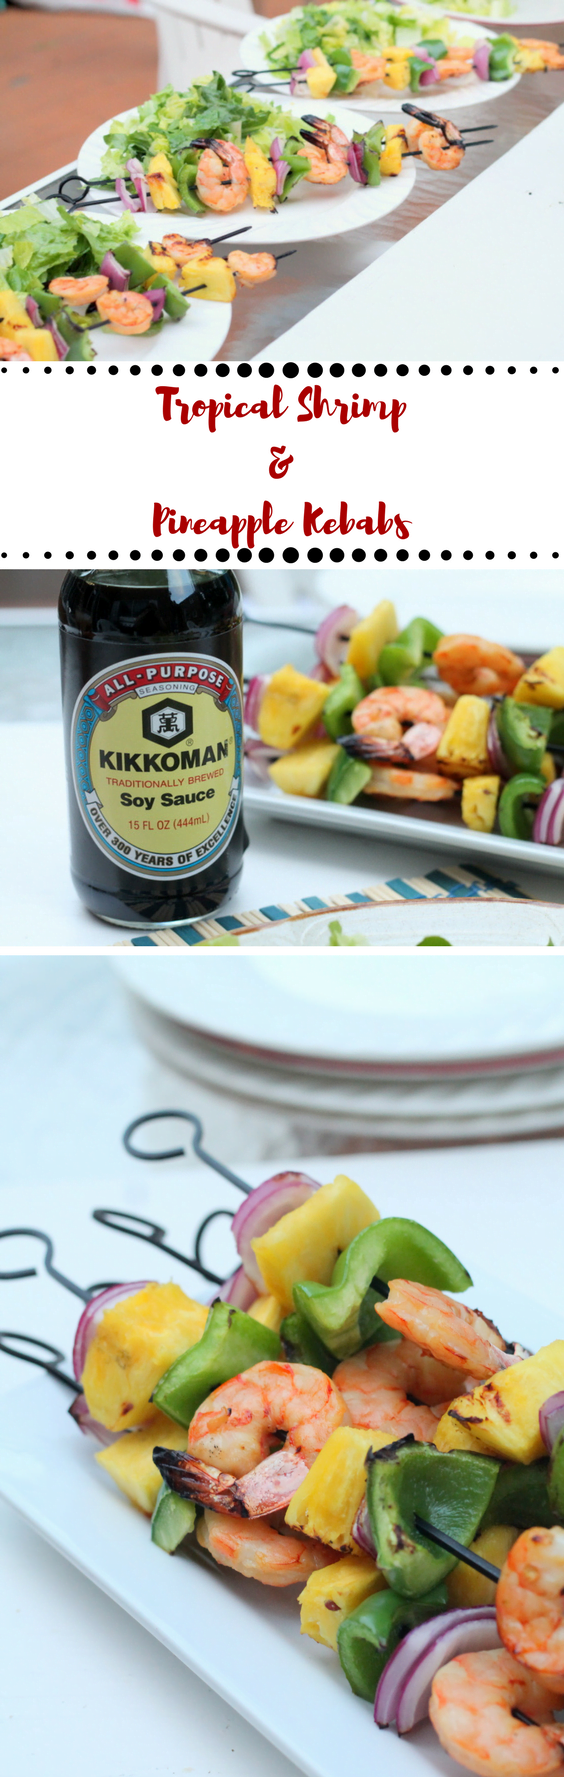 Tropical Shrimp and Pineapple Kebabs - make an easy summer entertaining grilling recipe for parties or weeknight meals